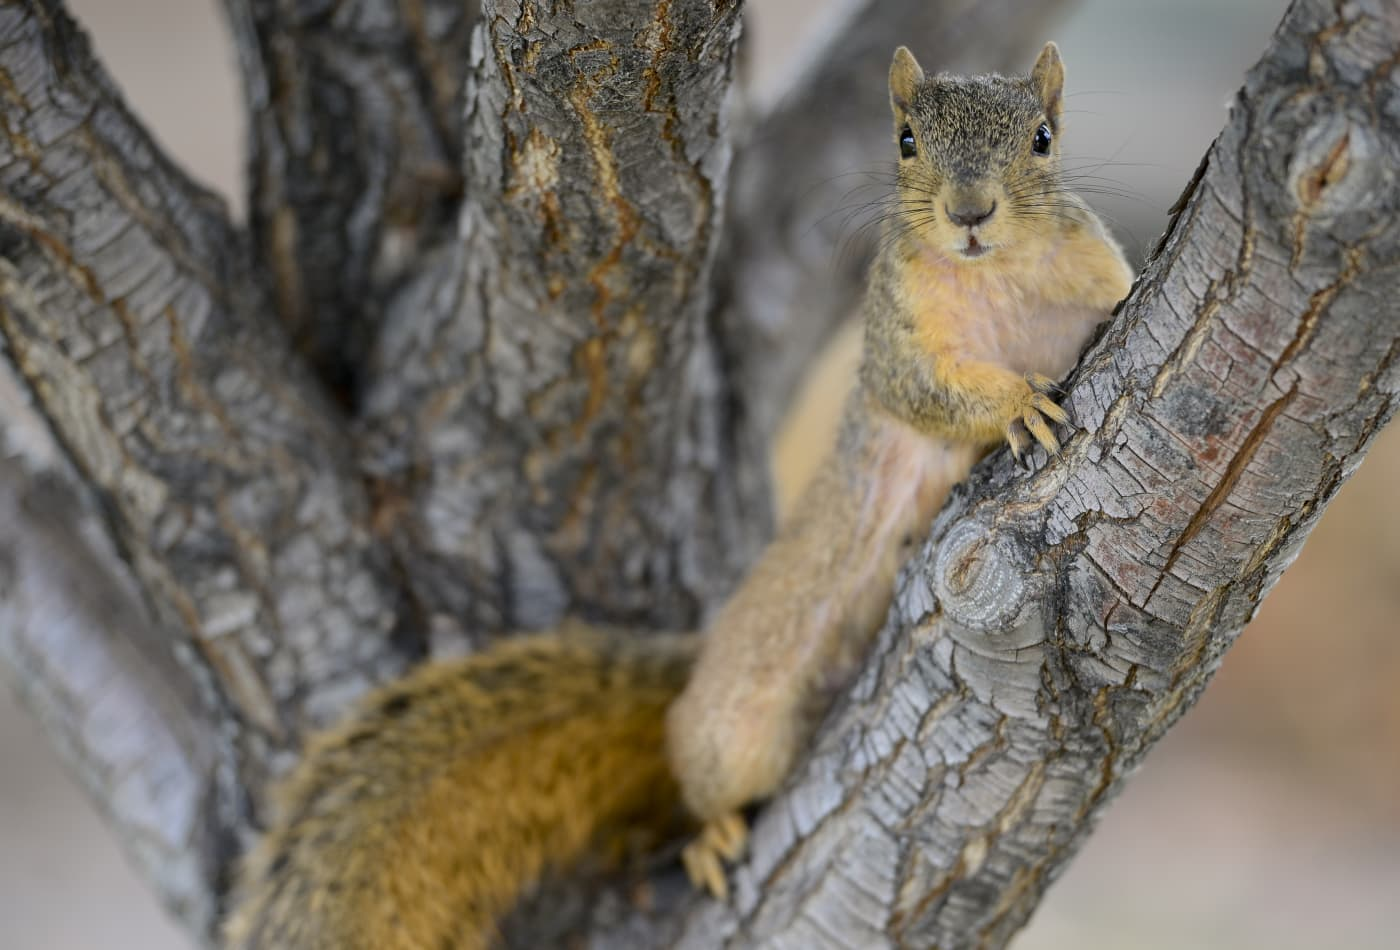 A squirrel has tested positive for the bubonic plague in Colorado